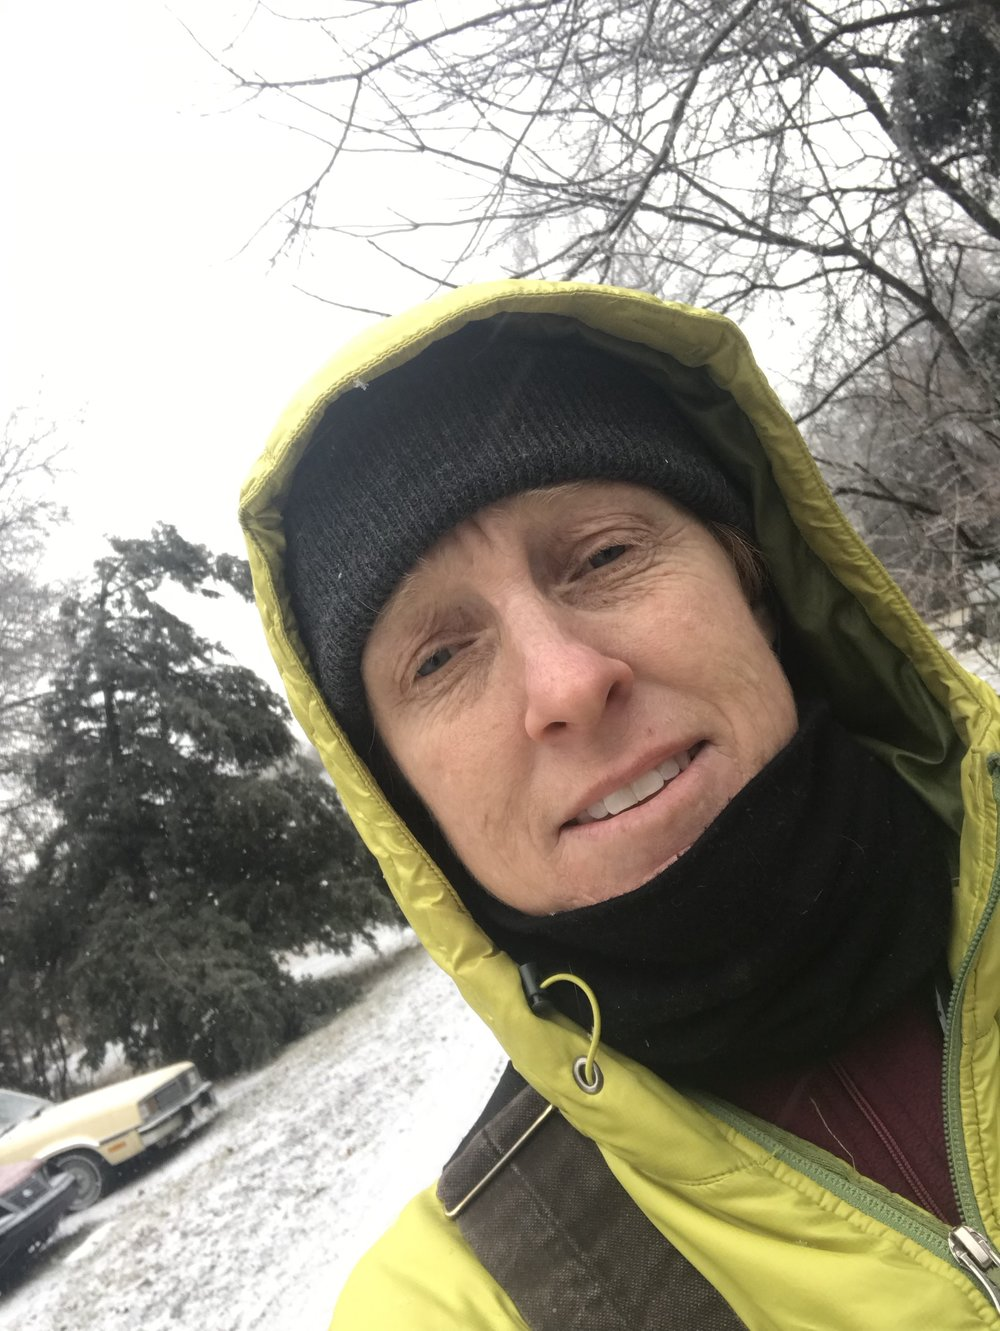 Maggie bundled up to do winter chores at her own farm, where she cares for three horses, one mule, three chickens, one dog, three cats and three humans.